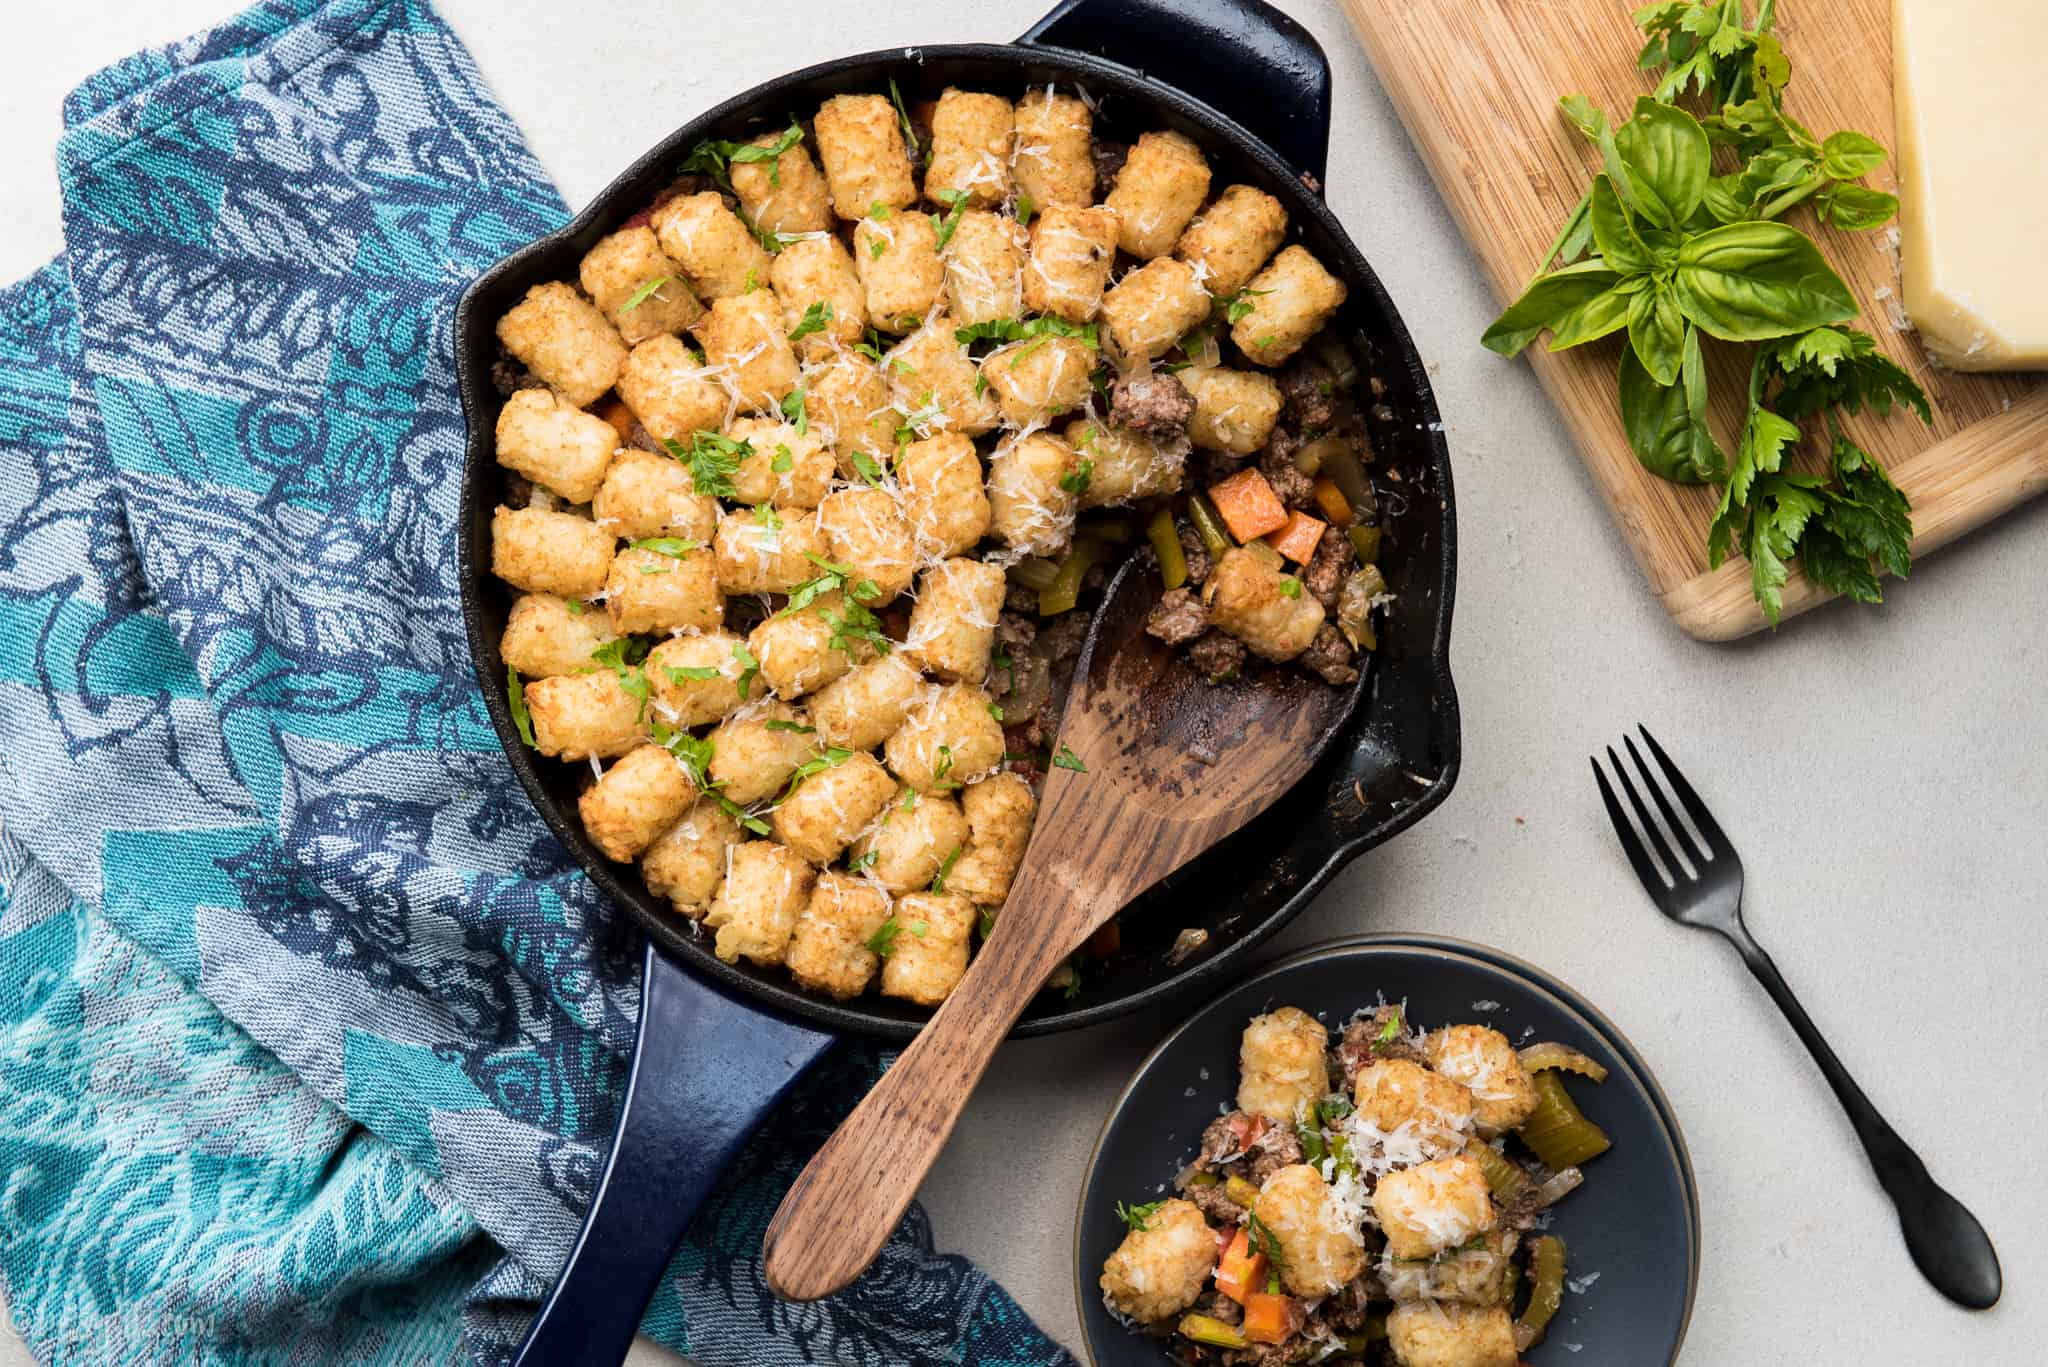 tater tot casserole with veggies in a skillet with a wooden spoon. Serving on a dark plate to the side